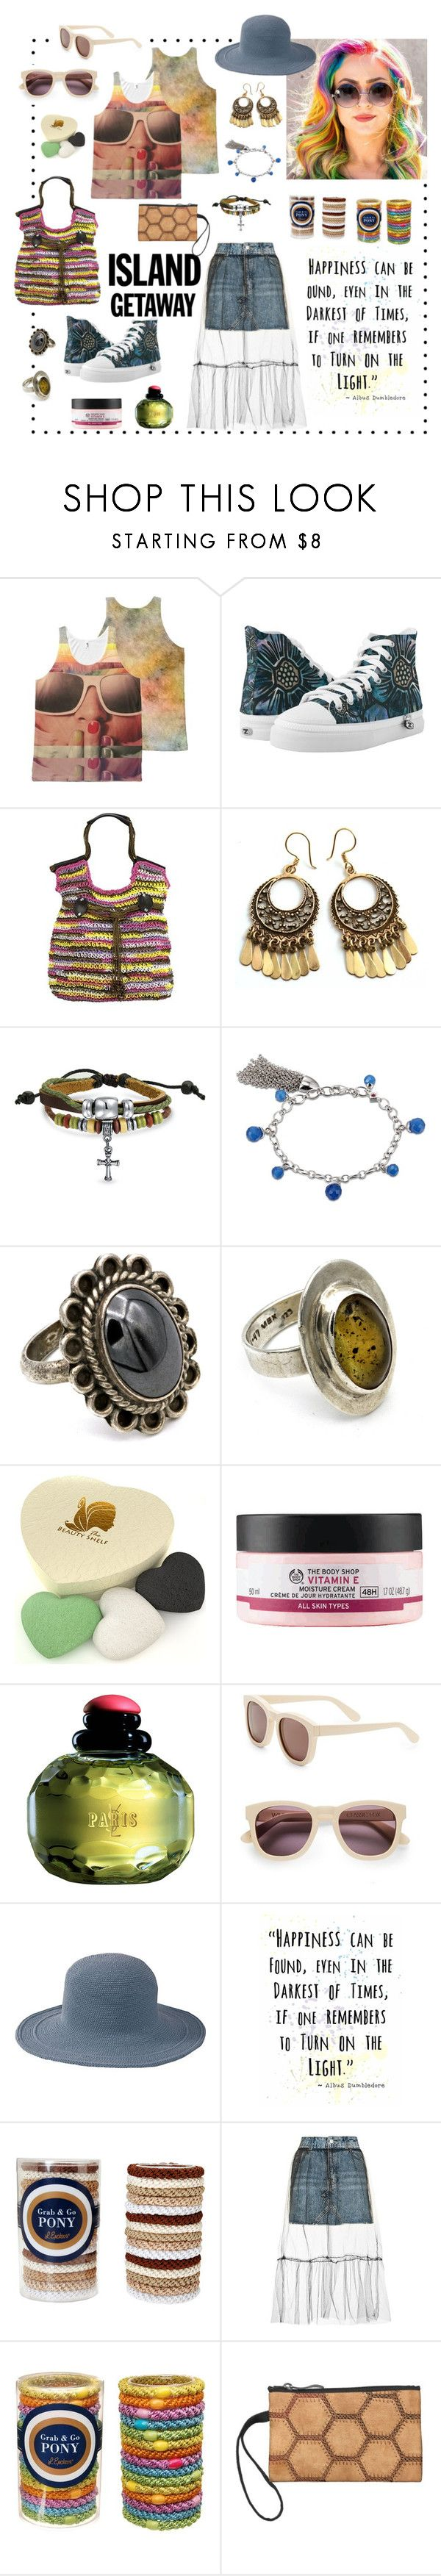 """""""Where's My Mind"""" by ubm-store ❤ liked on Polyvore featuring Bling Jewelry, The Konjac Sponge Co, The Body Shop, Yves Saint Laurent, Wildfox, San Diego Hat Co., L. Erickson, Topshop, vintage and hippie"""